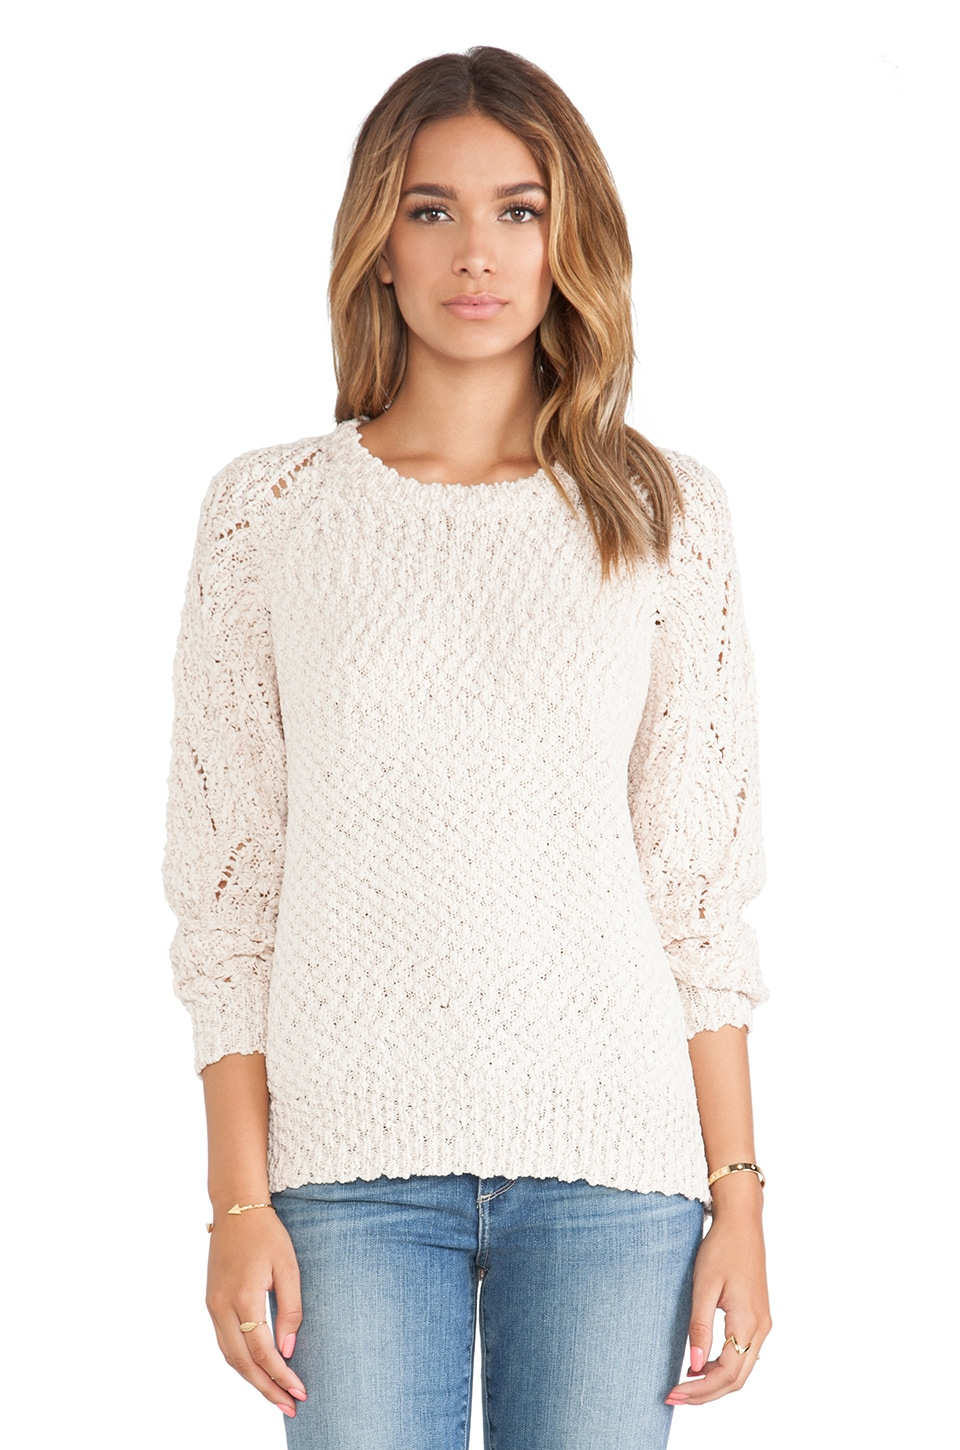 Candela Adriana Sweater in Blush